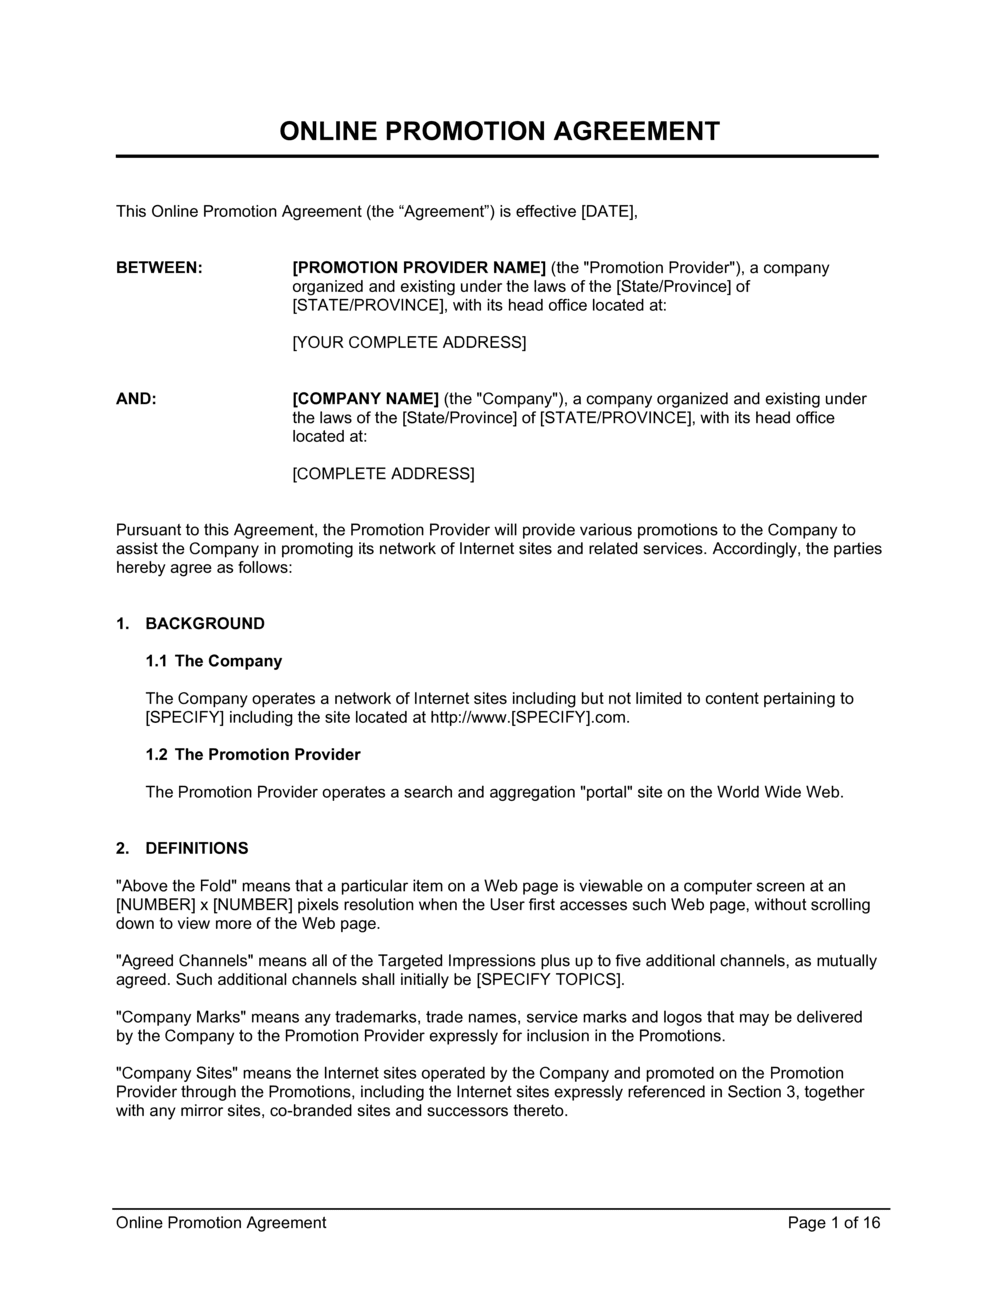 Business-in-a-Box's Online Promotion Agreement Template